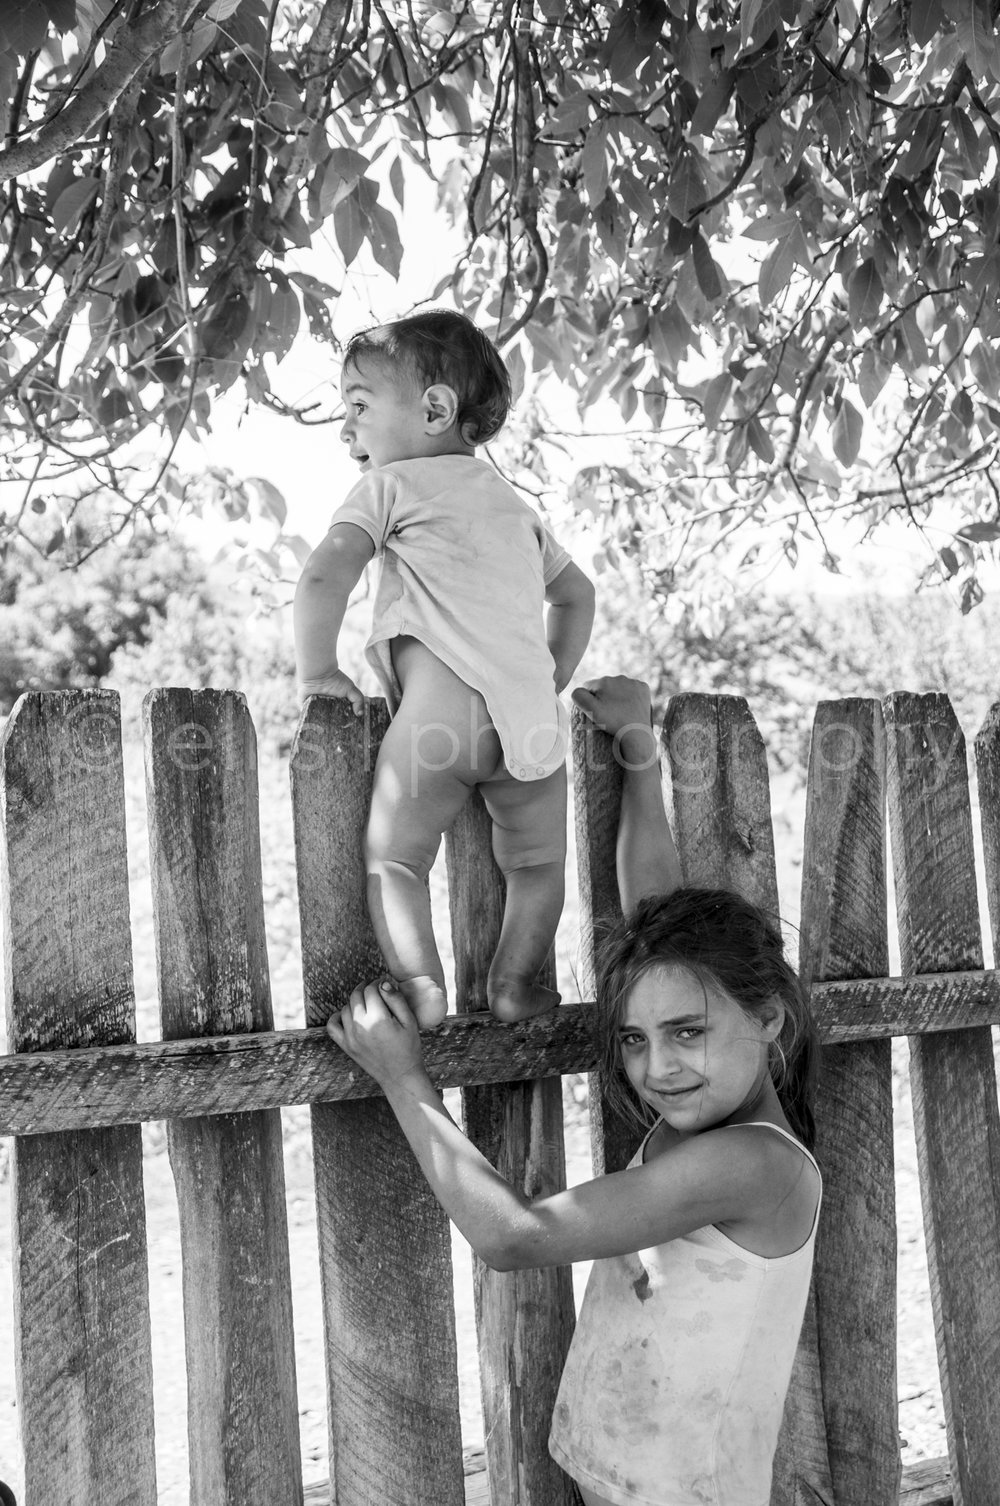 Young Romanian gipsy girl watches over her baby brother who is standing on the wooden fence. Portraits of a Romanian Family. Made by daily life photographer Ellis Photography.